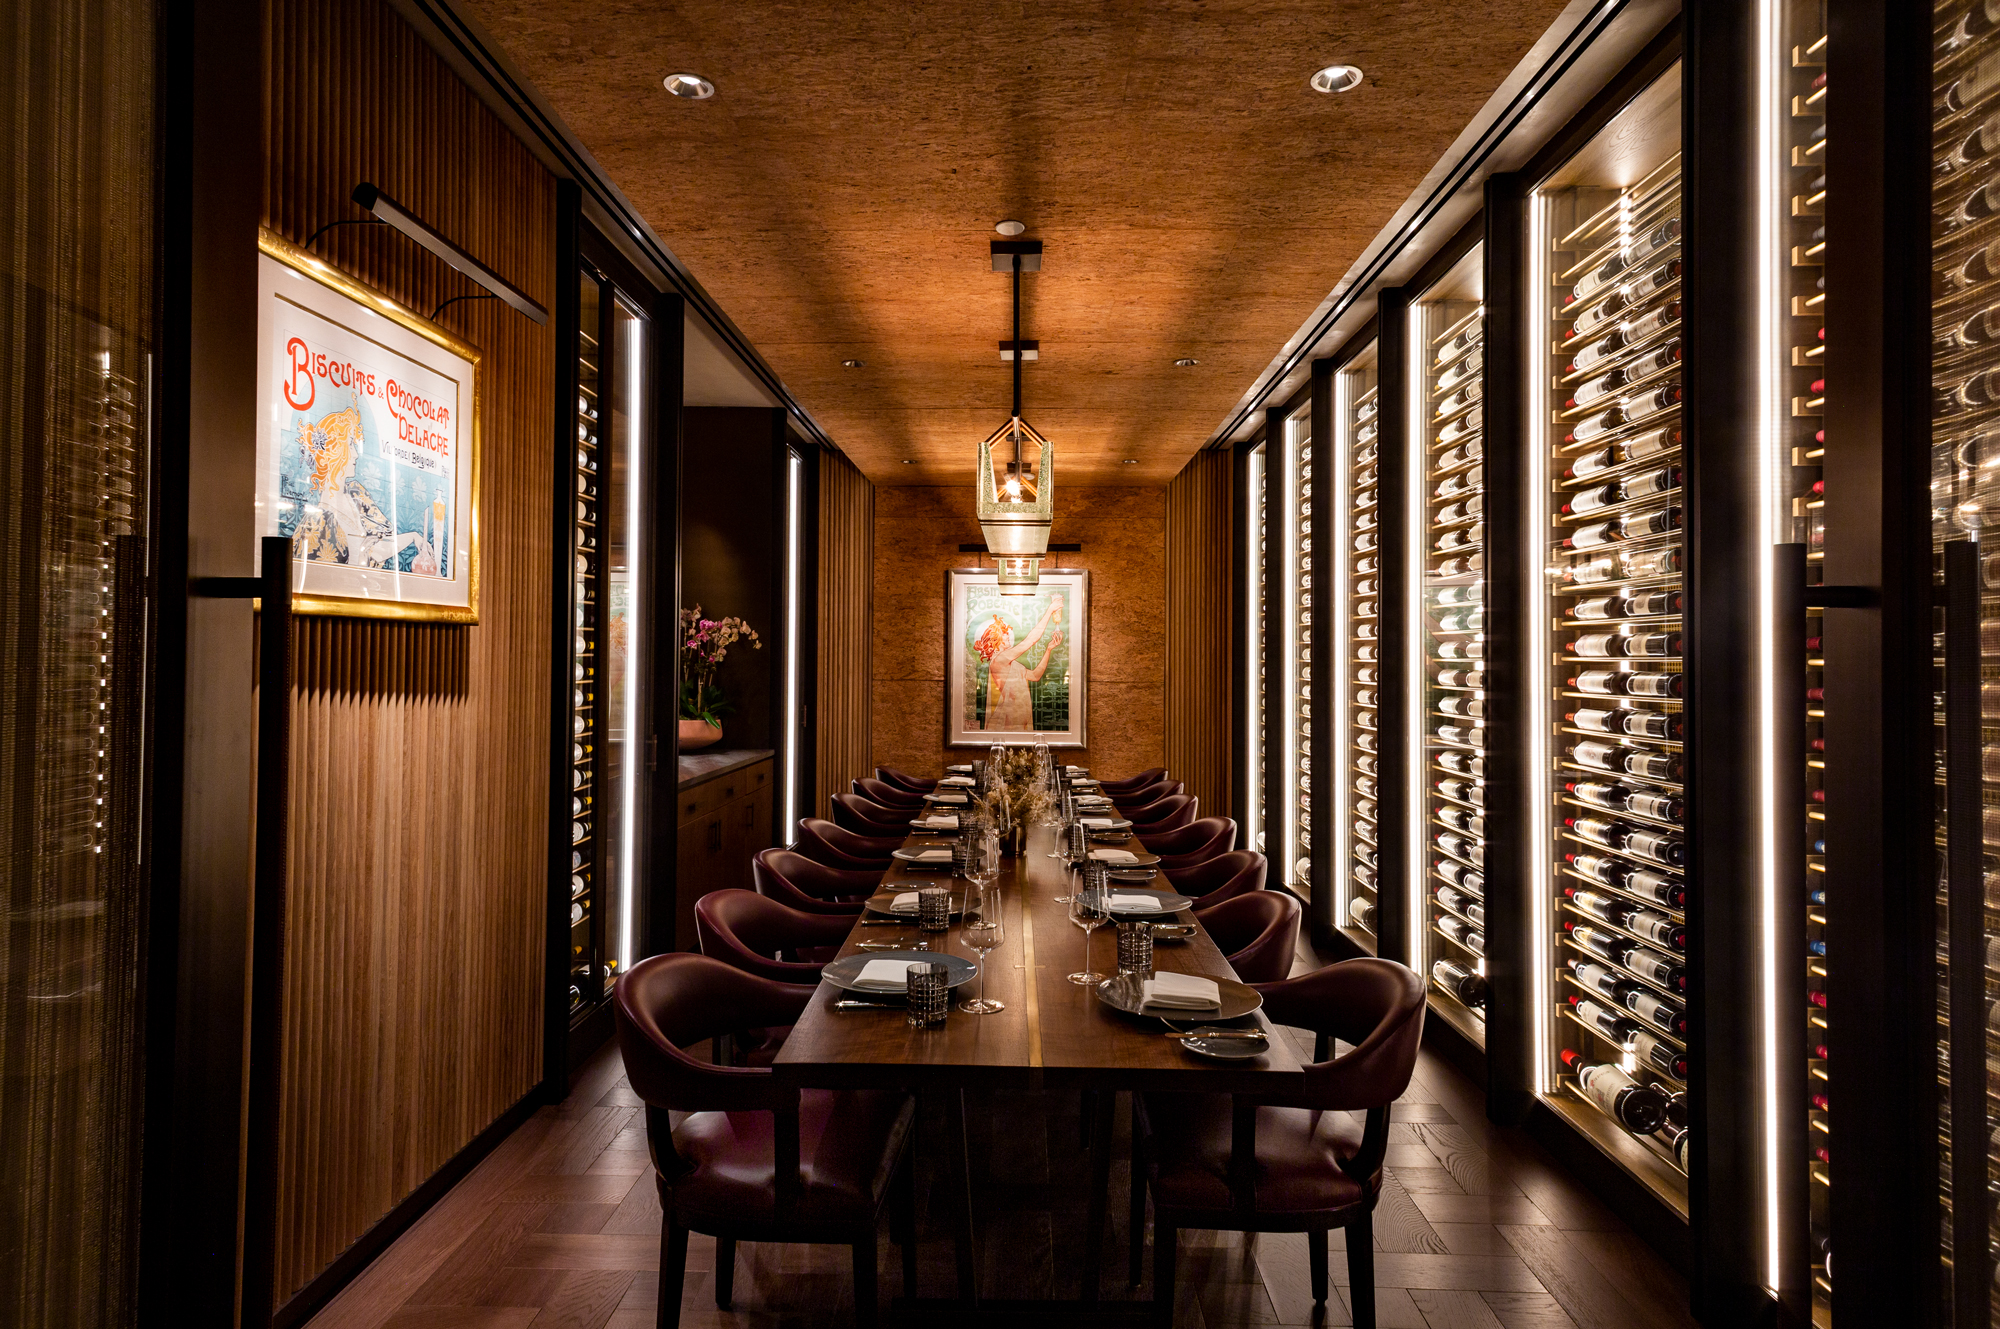 <private dining room with wine cellar walls at ws new york